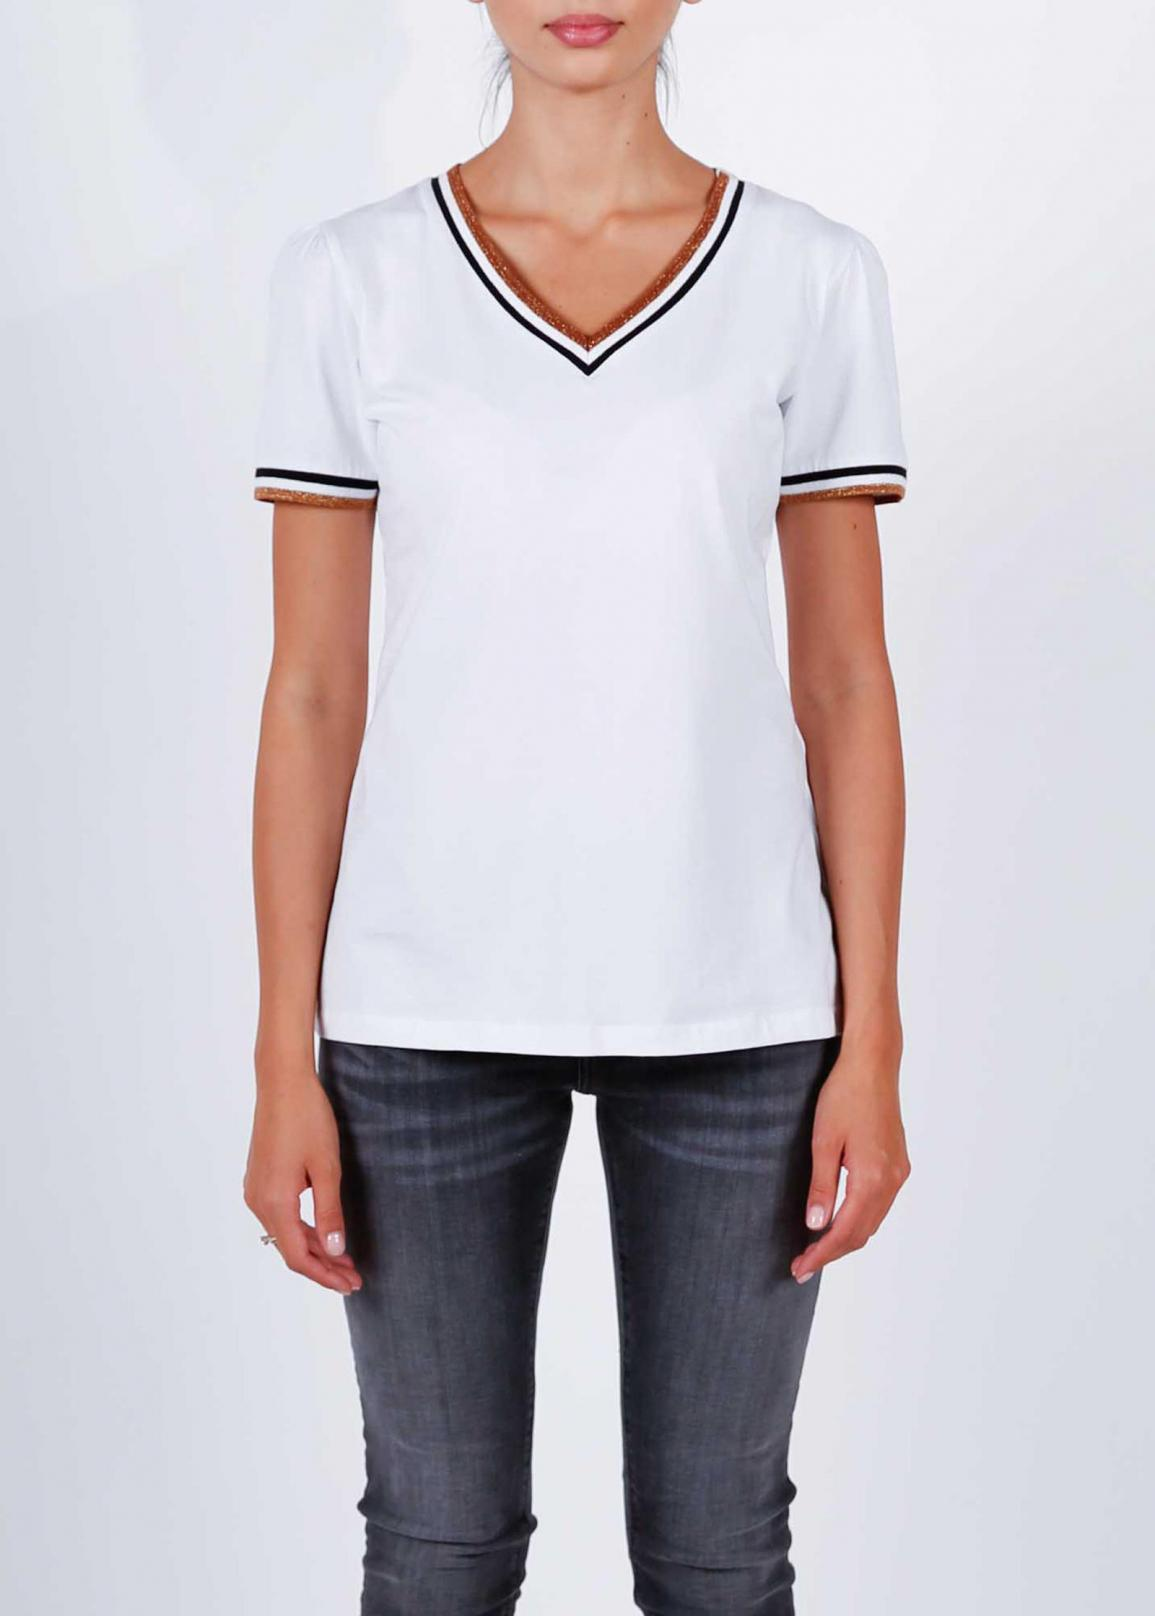 Cross Jeans® T-shirt Ringer V-Neck - White